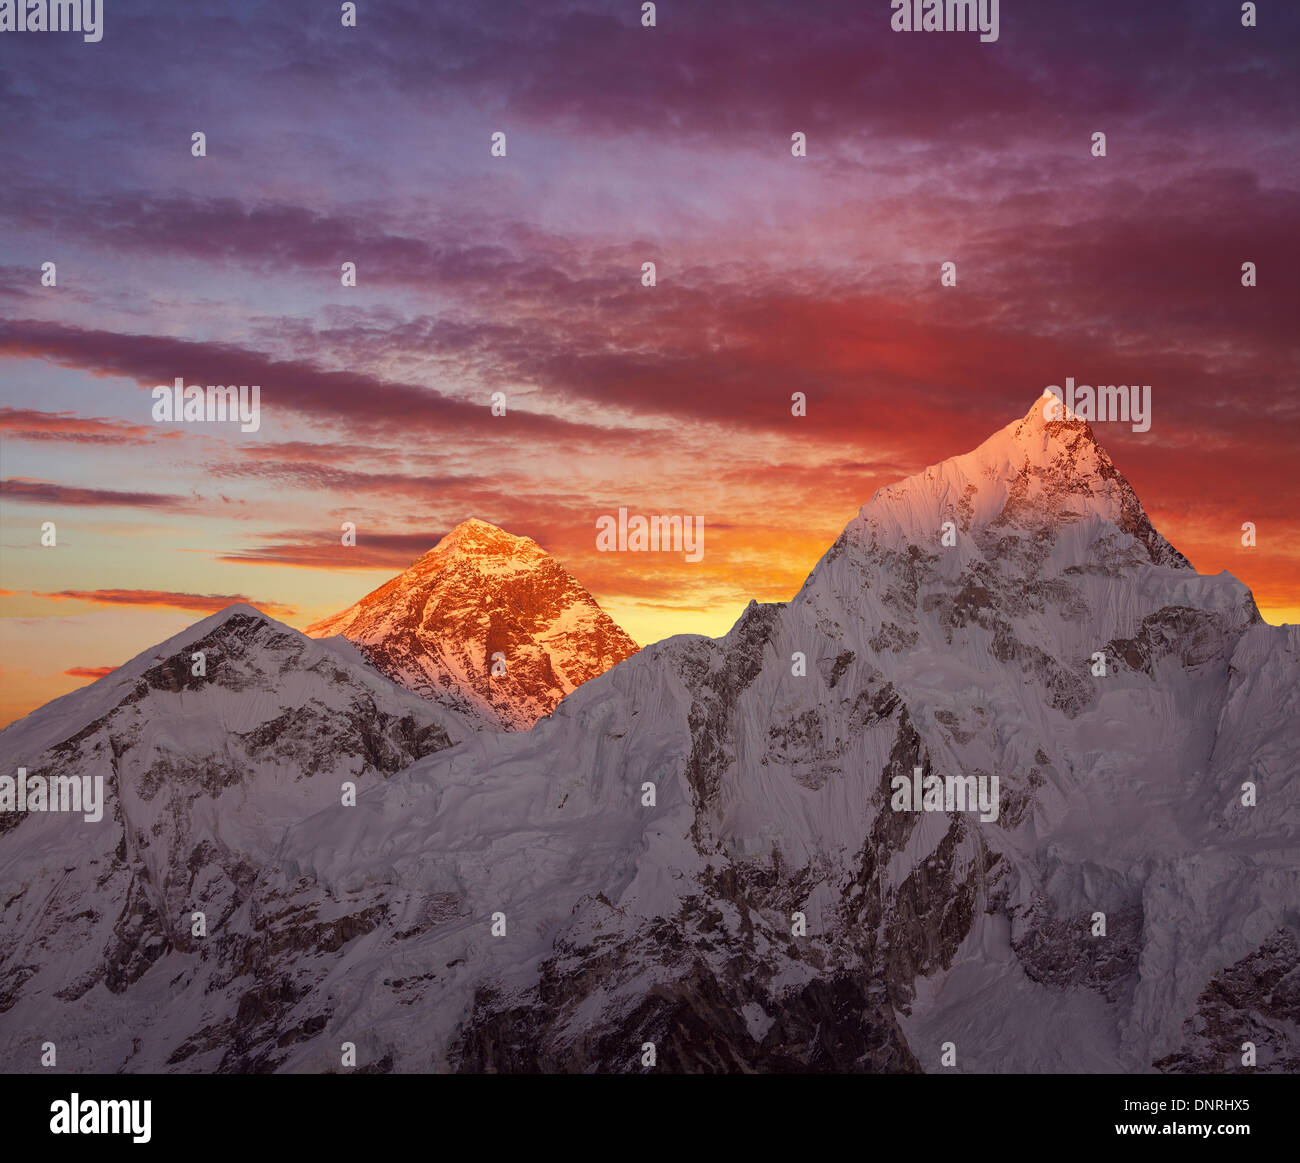 Greatness of nature. Golden pyramid of Mount Everest (8848 m) at sunset. - Stock Image